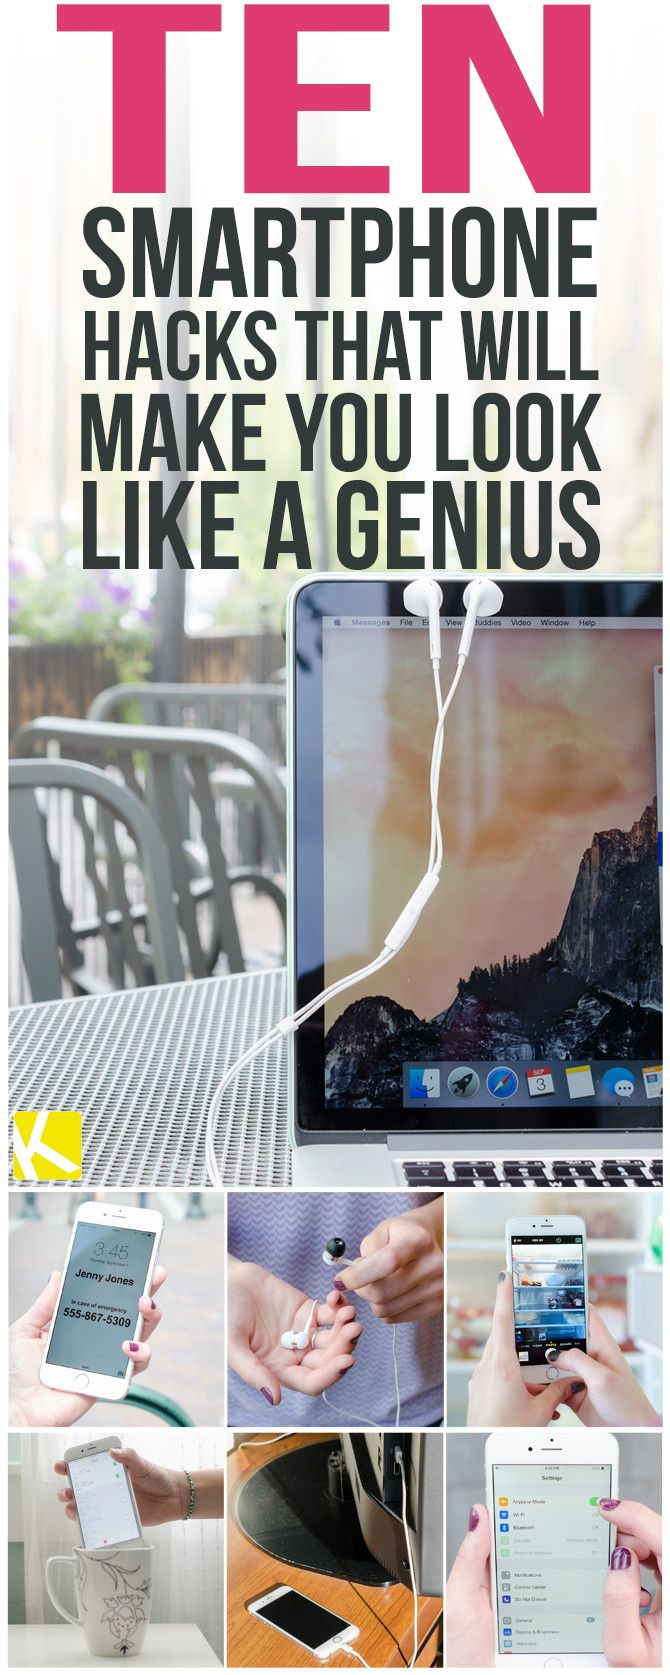 10 Genius Smartphone Hacks That Will Change Your Life - The Krazy Coupon Lady